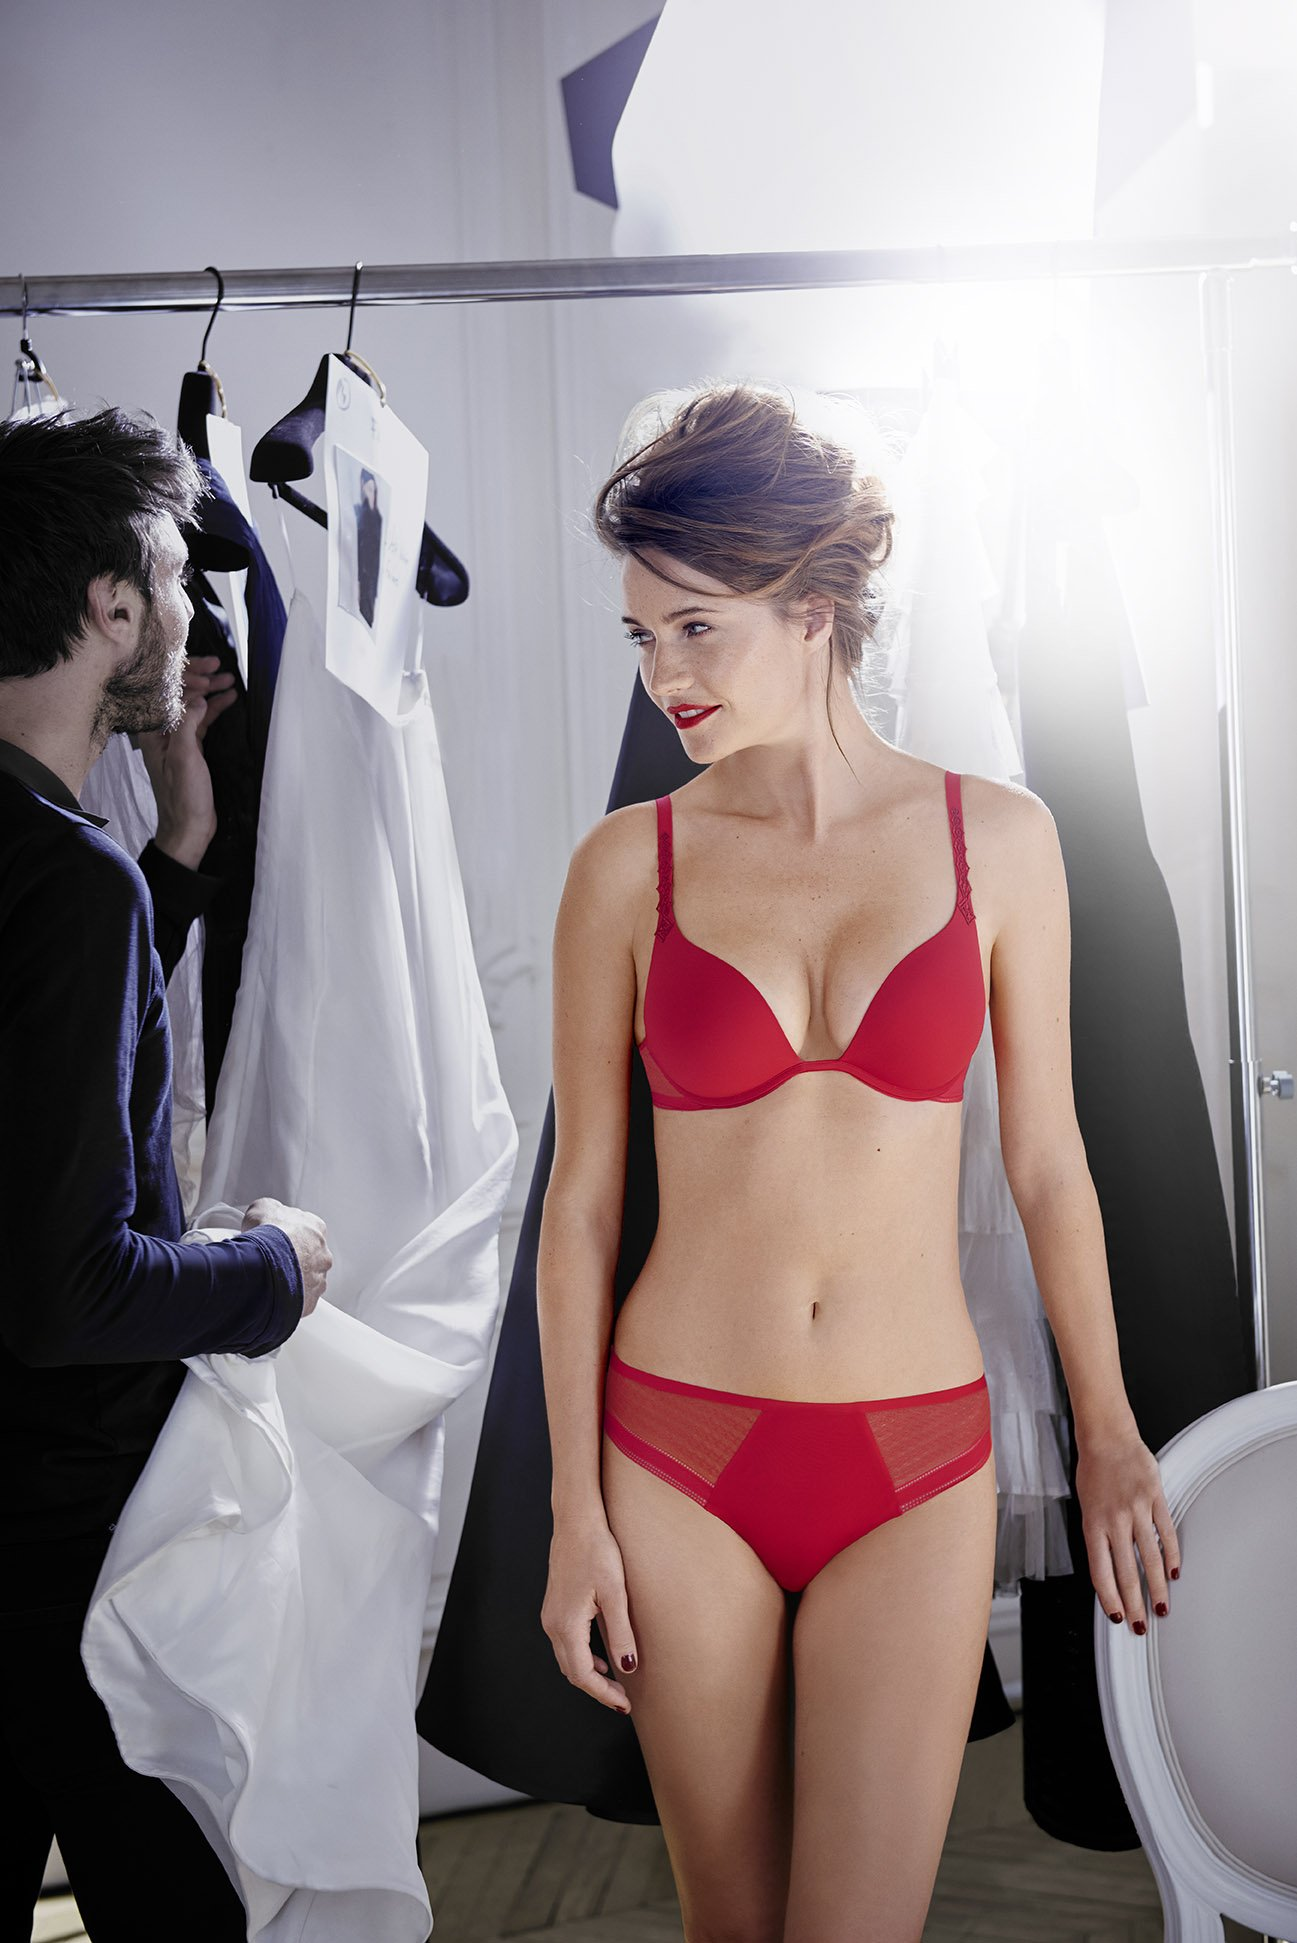 red color push-up bra with matching panties